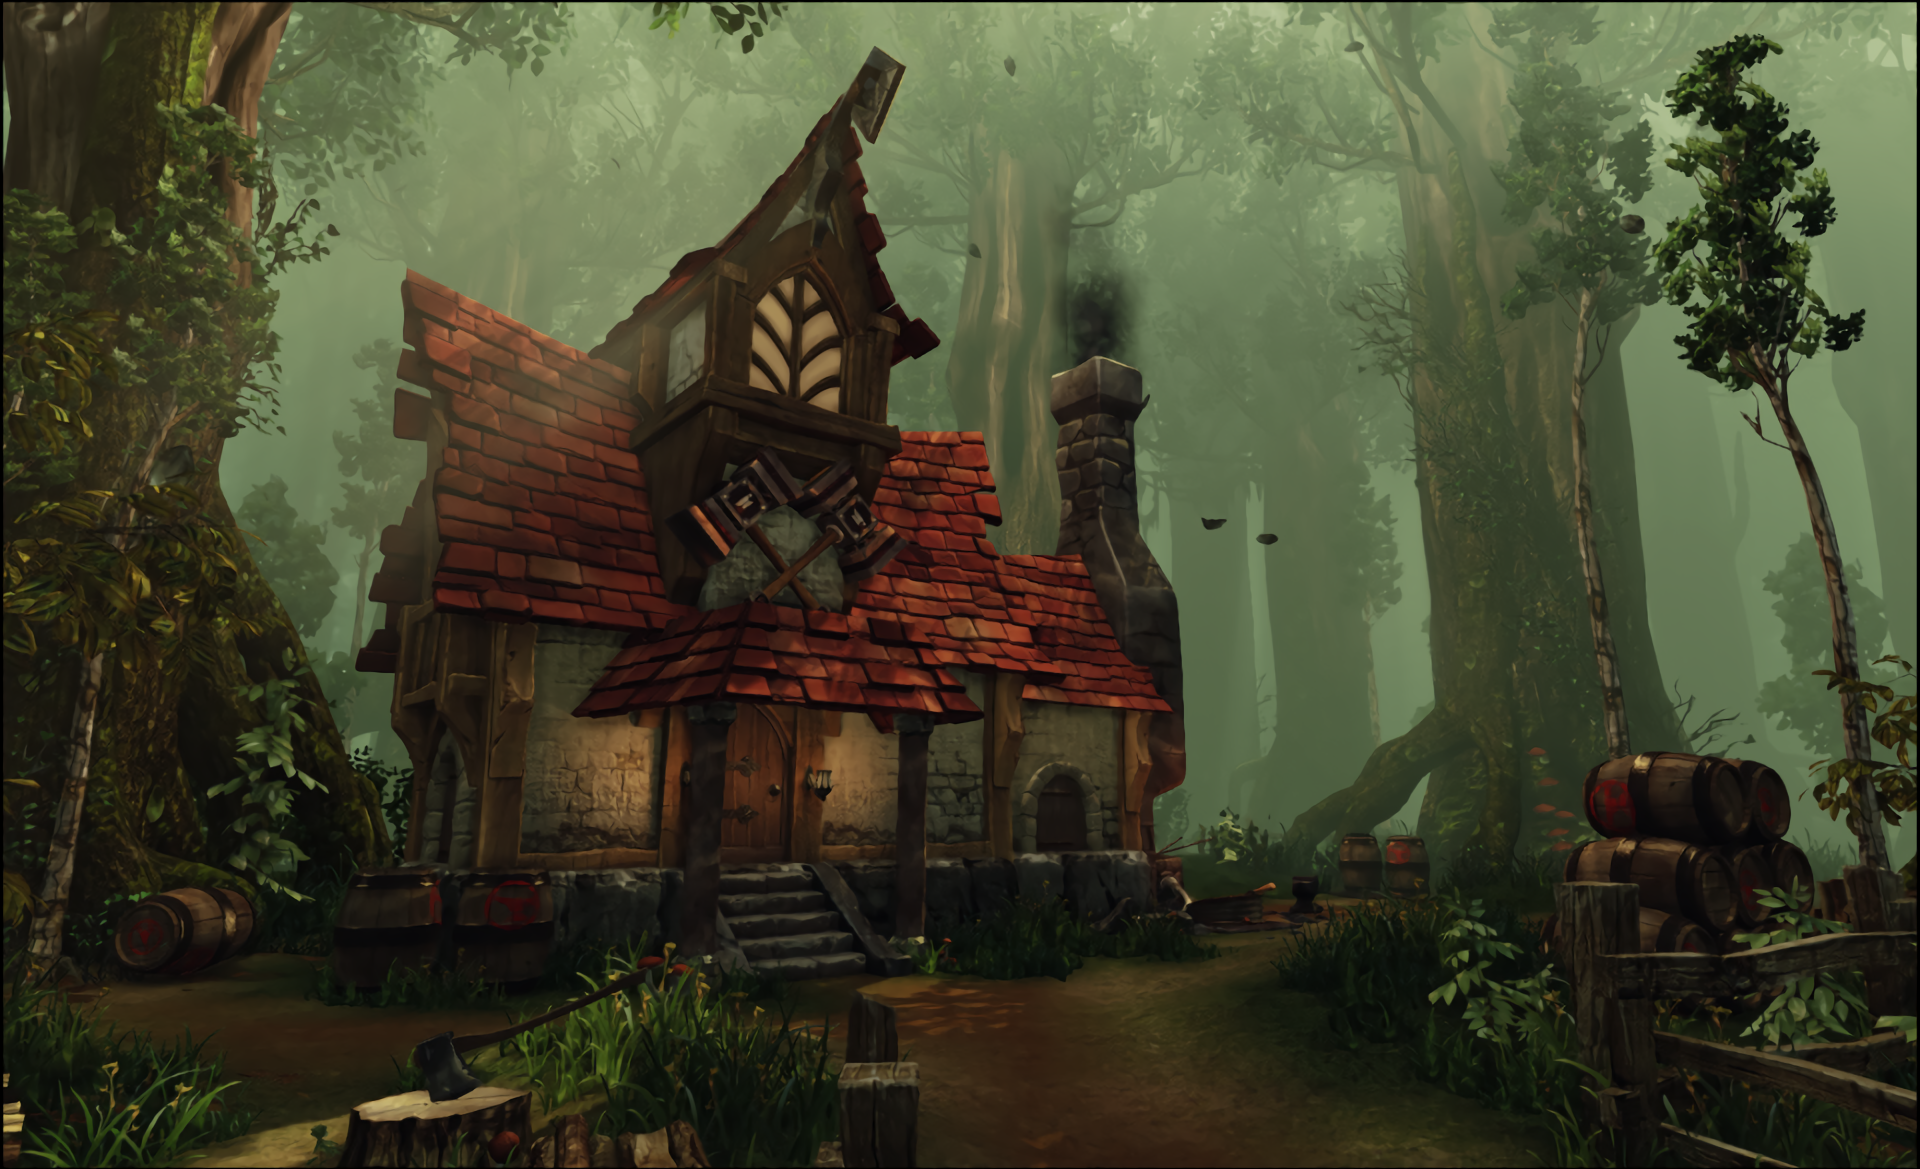 Dwarf House In The Forest Hd Wallpaper Background Image